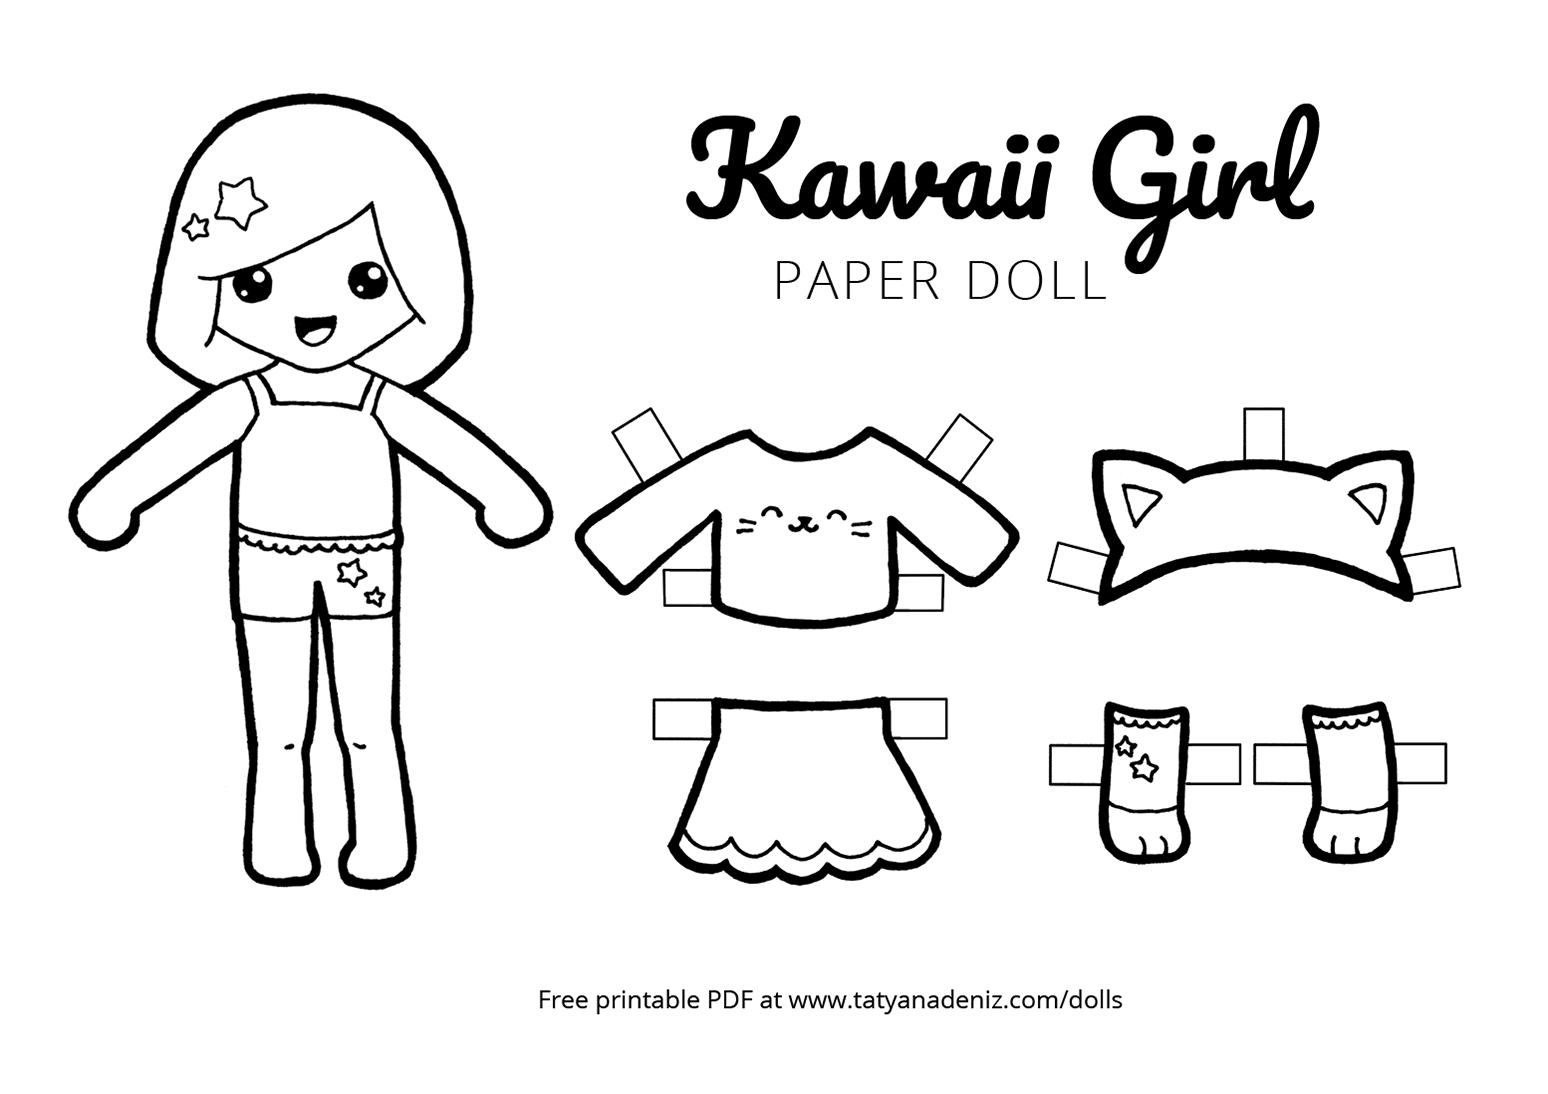 Free Printable Kawaii Paper Dolls Colouring Pages - Free Printable Paper Doll Coloring Pages